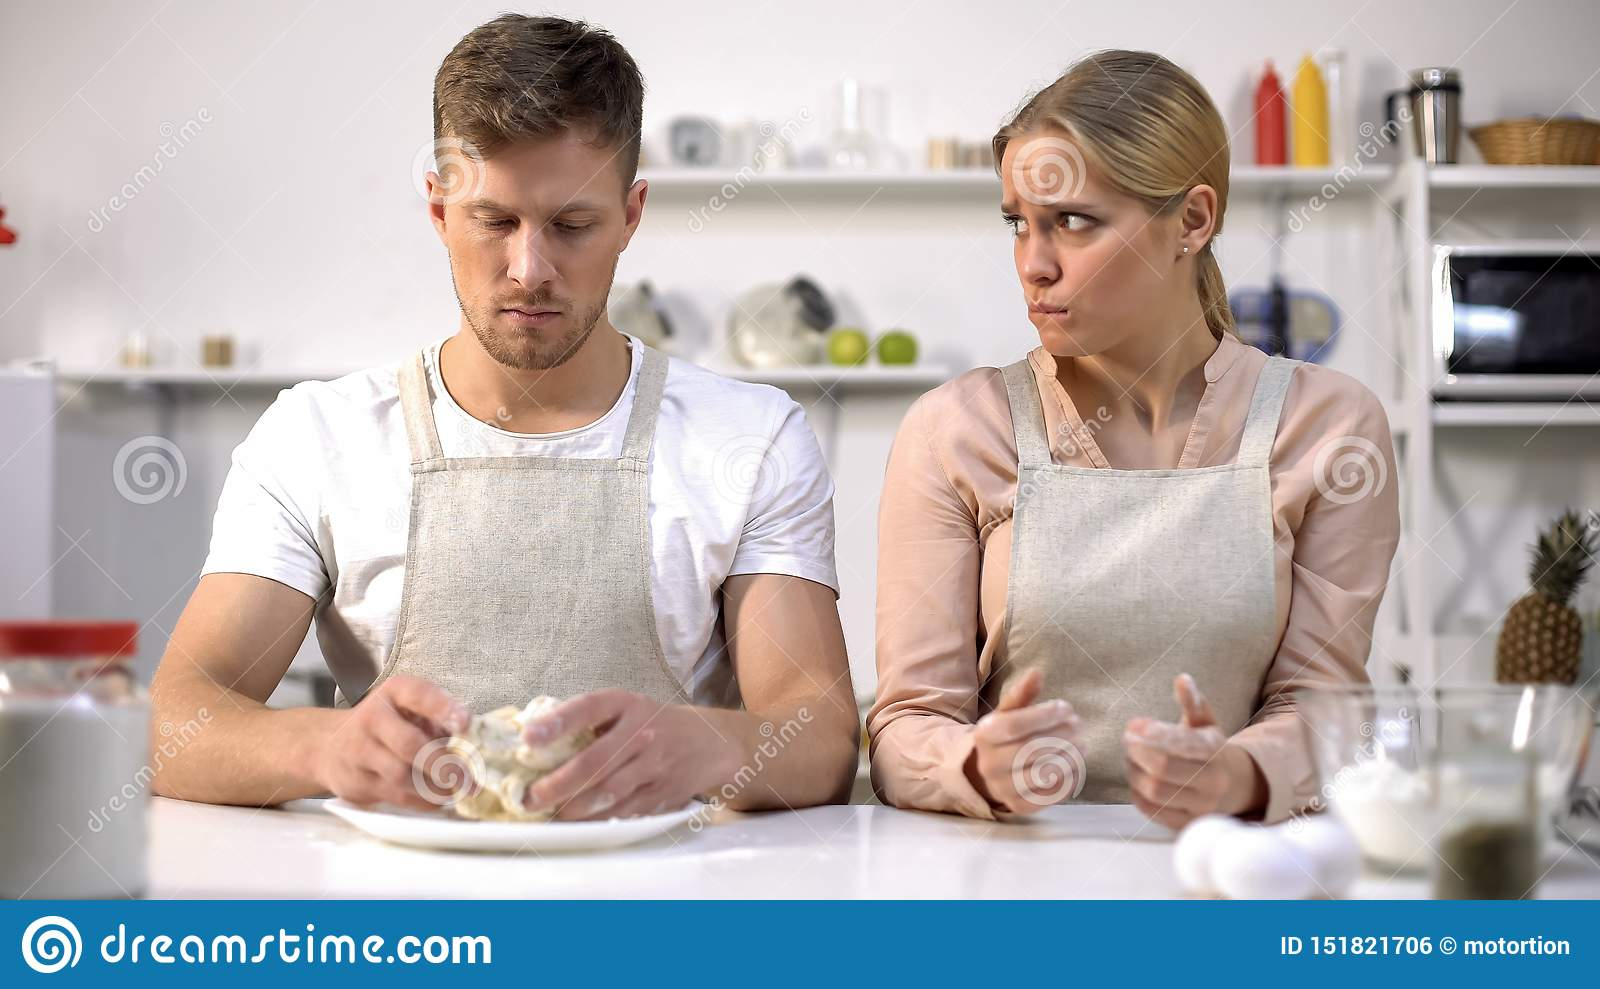 Male holding raw dough, wife looking awkwardly on husband, bad cook, problem